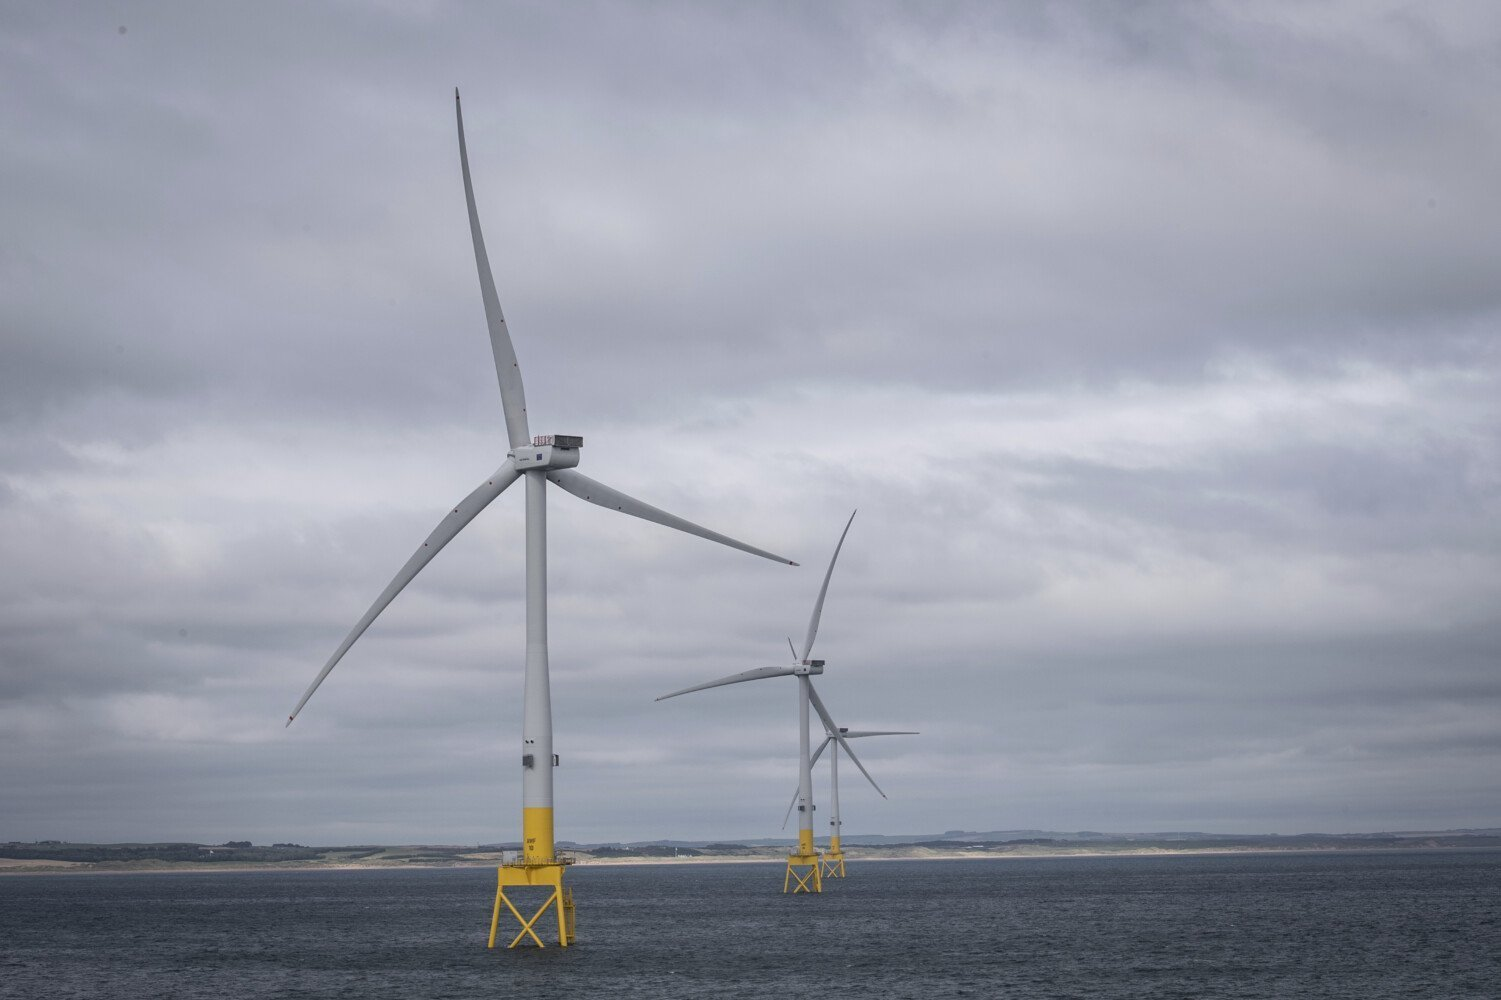 Governor Mills to Travel to Scotland to See Potential of Offshore Wind